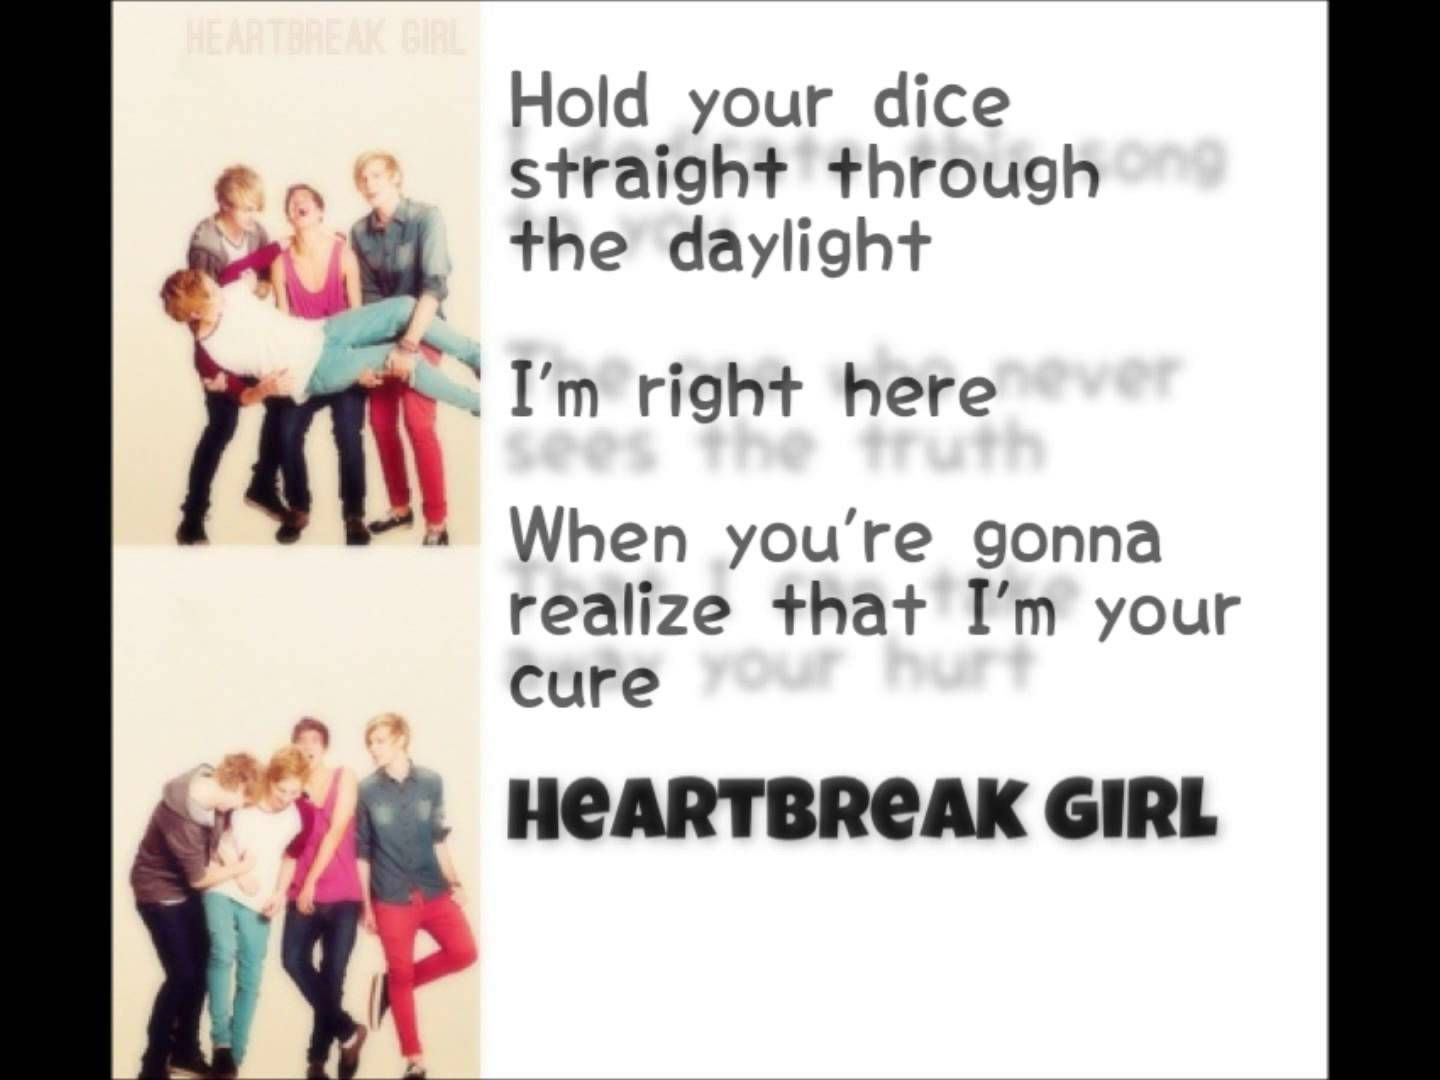 Heartbreak Girl - 5 Seconds of Summer (lyrics) Has some mistakes, but I'm only pinning for the song.